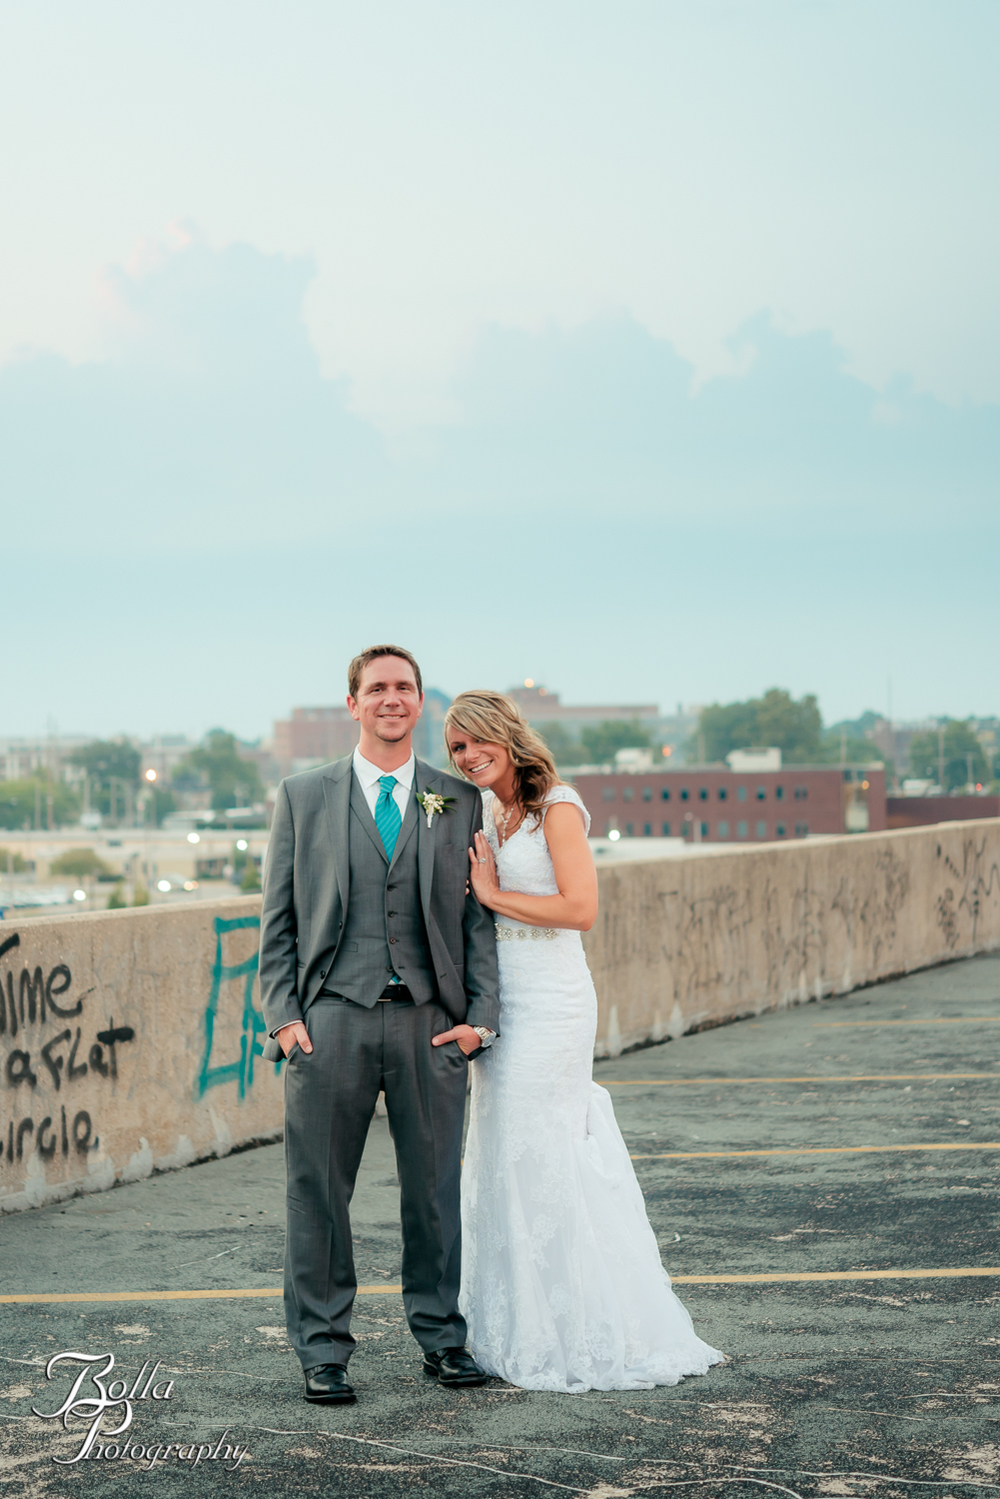 Bolla_Photography_St_Louis_wedding_photographer-0414.jpg